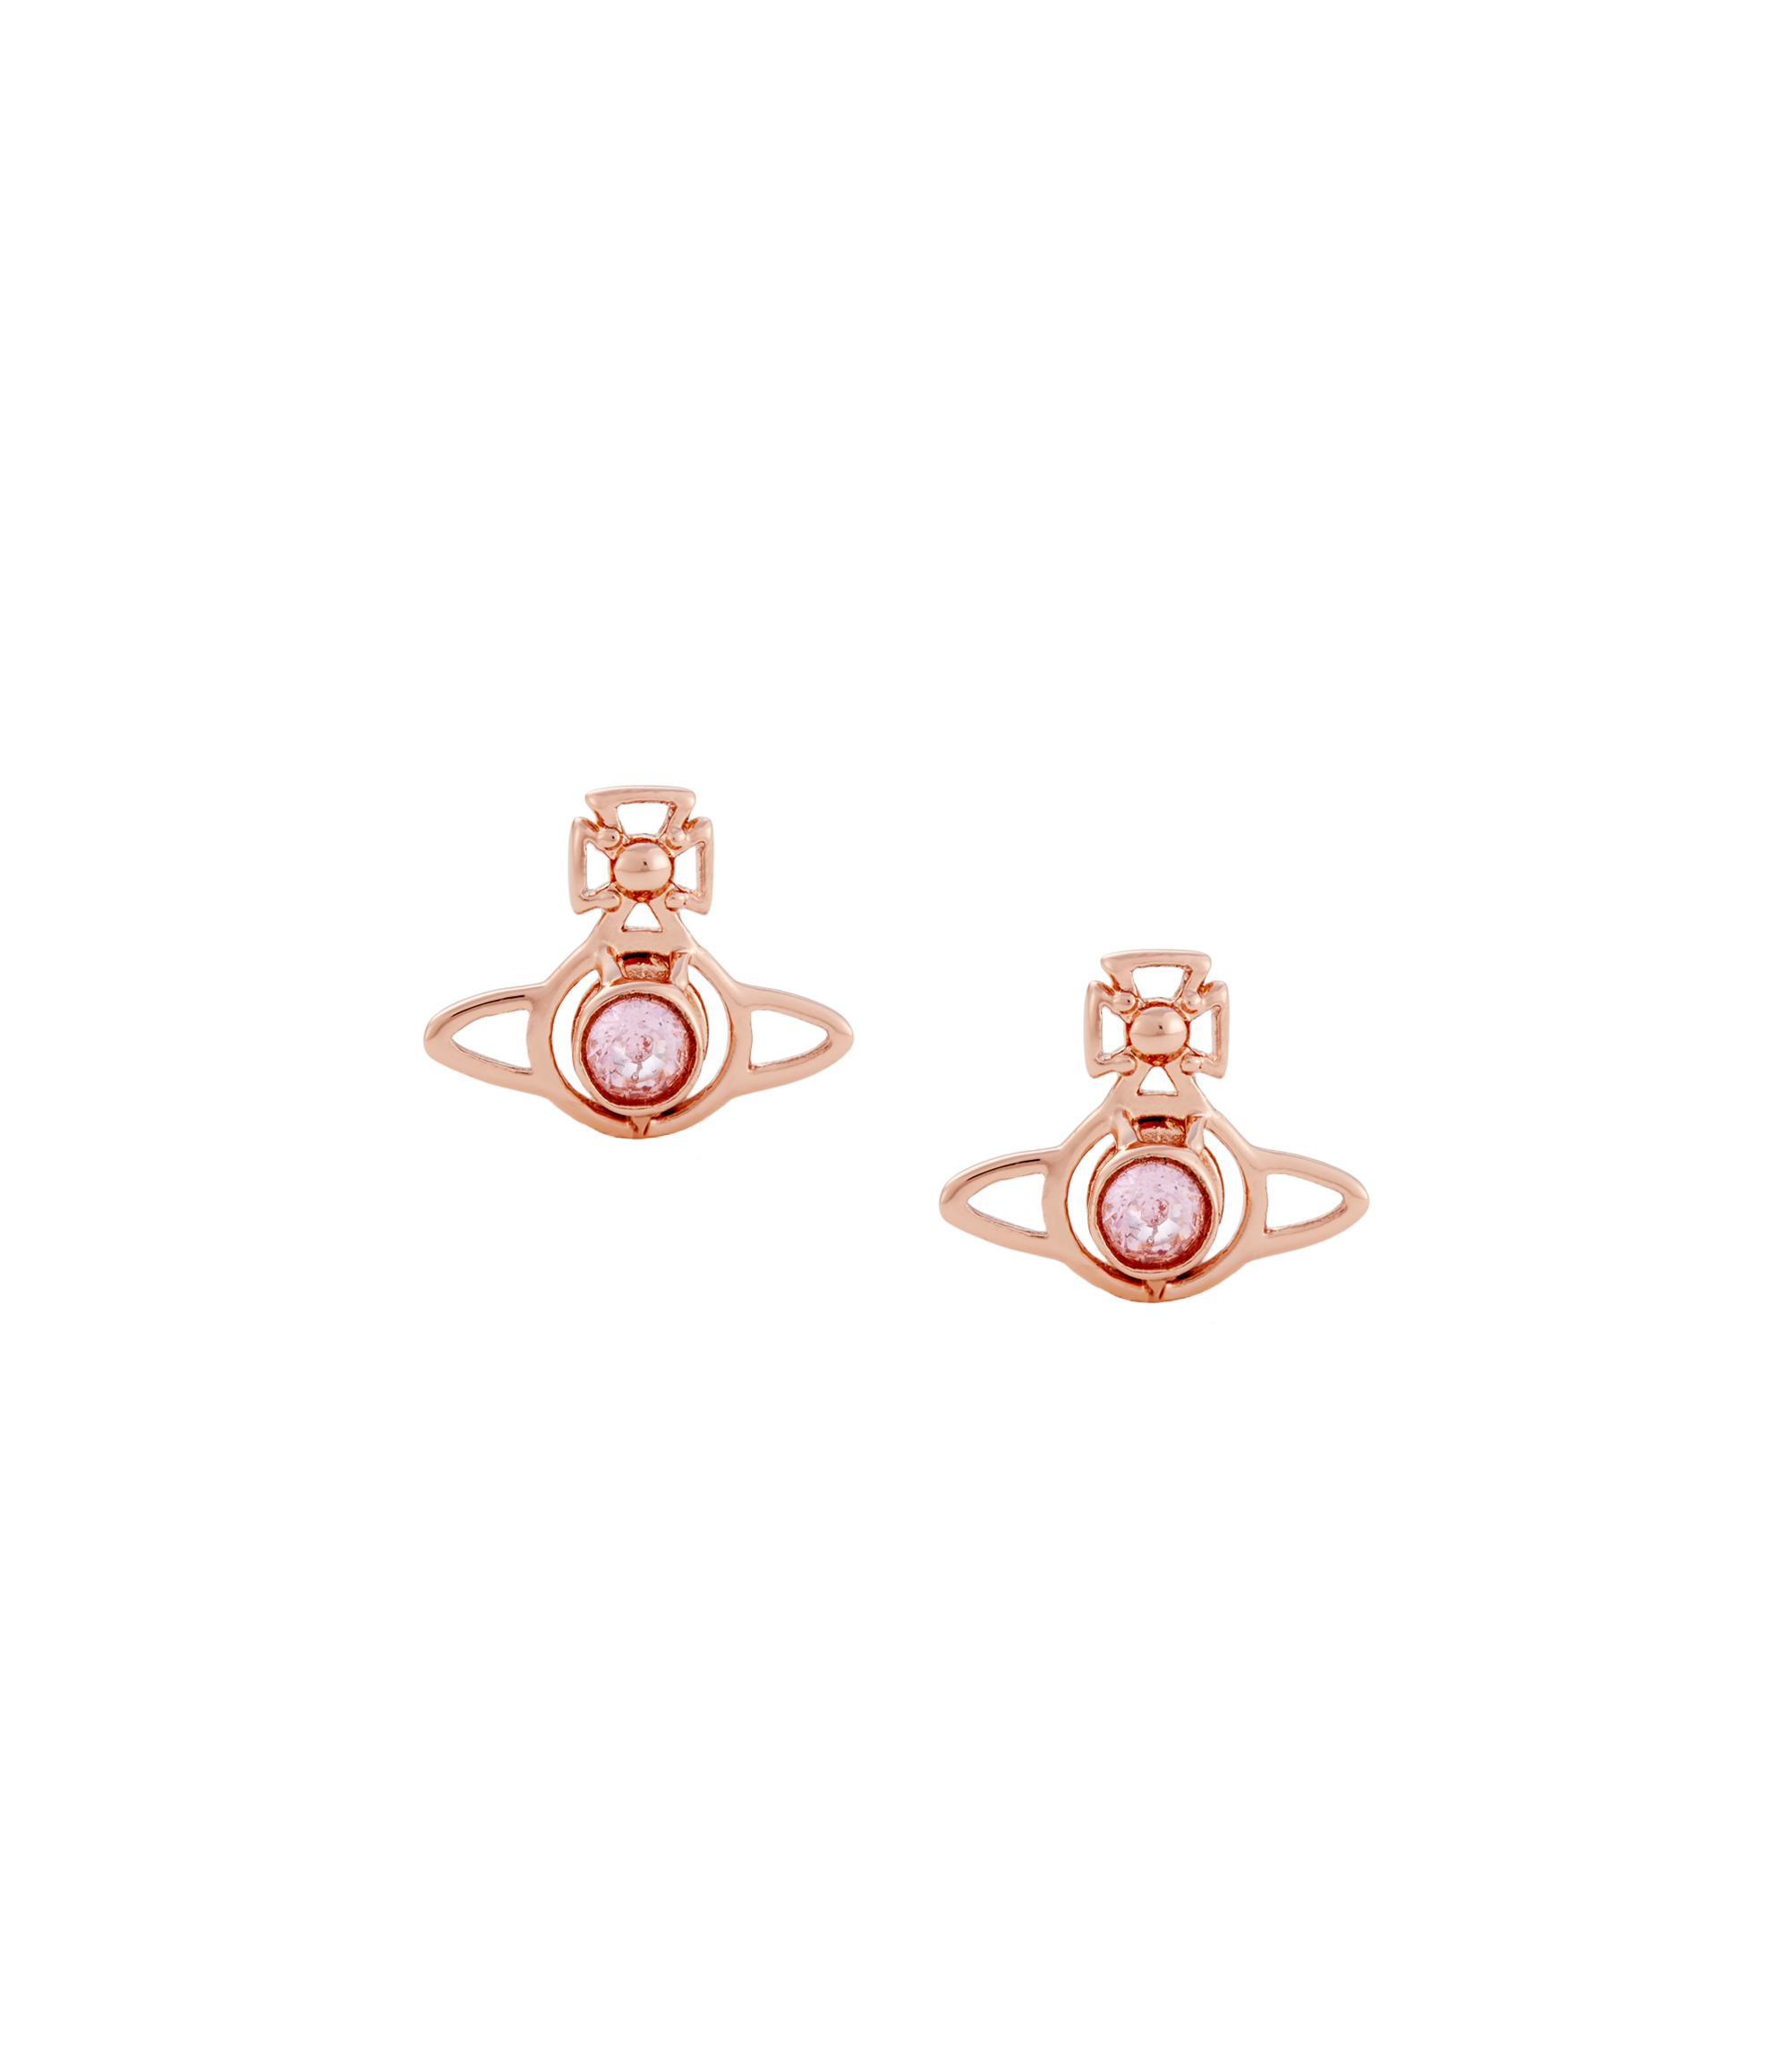 Vivienne Westwood Nora Earrings Pink